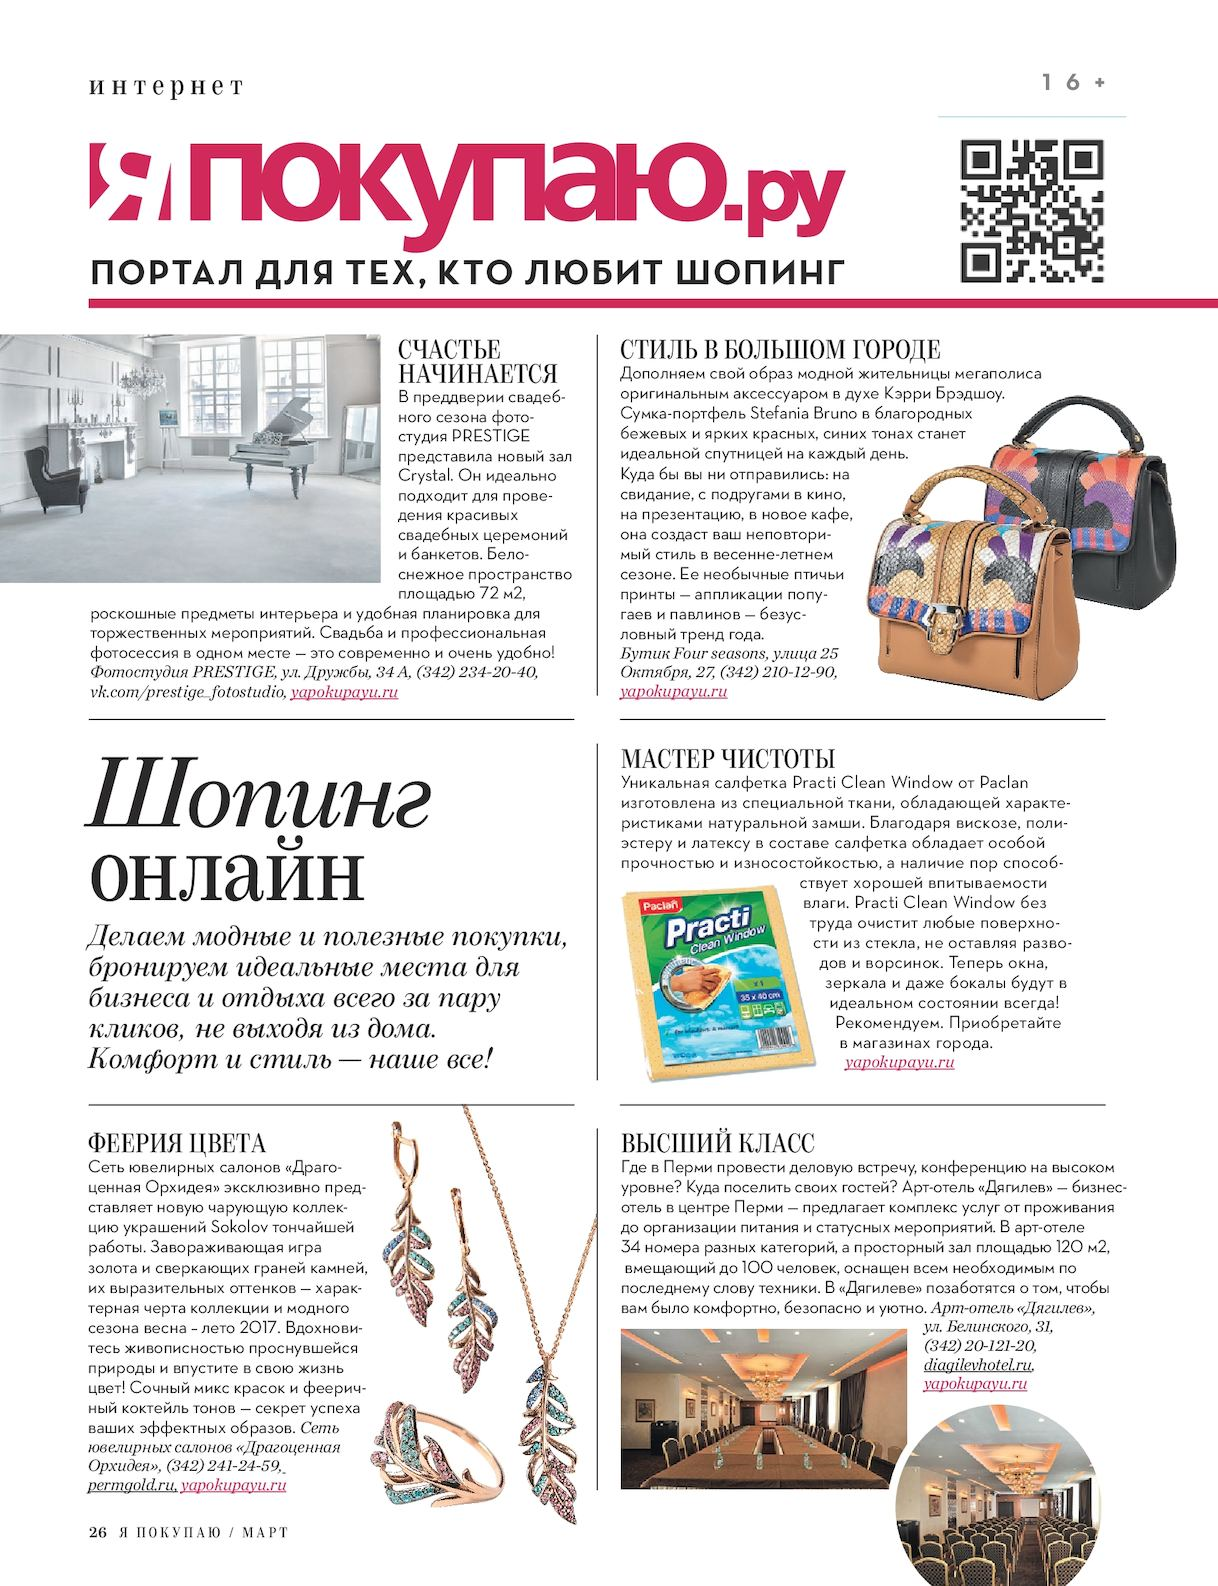 Shopping Guide «Я Покупаю. Пермь», март 2017 - CALAMEO Downloader 1ba05ac8367